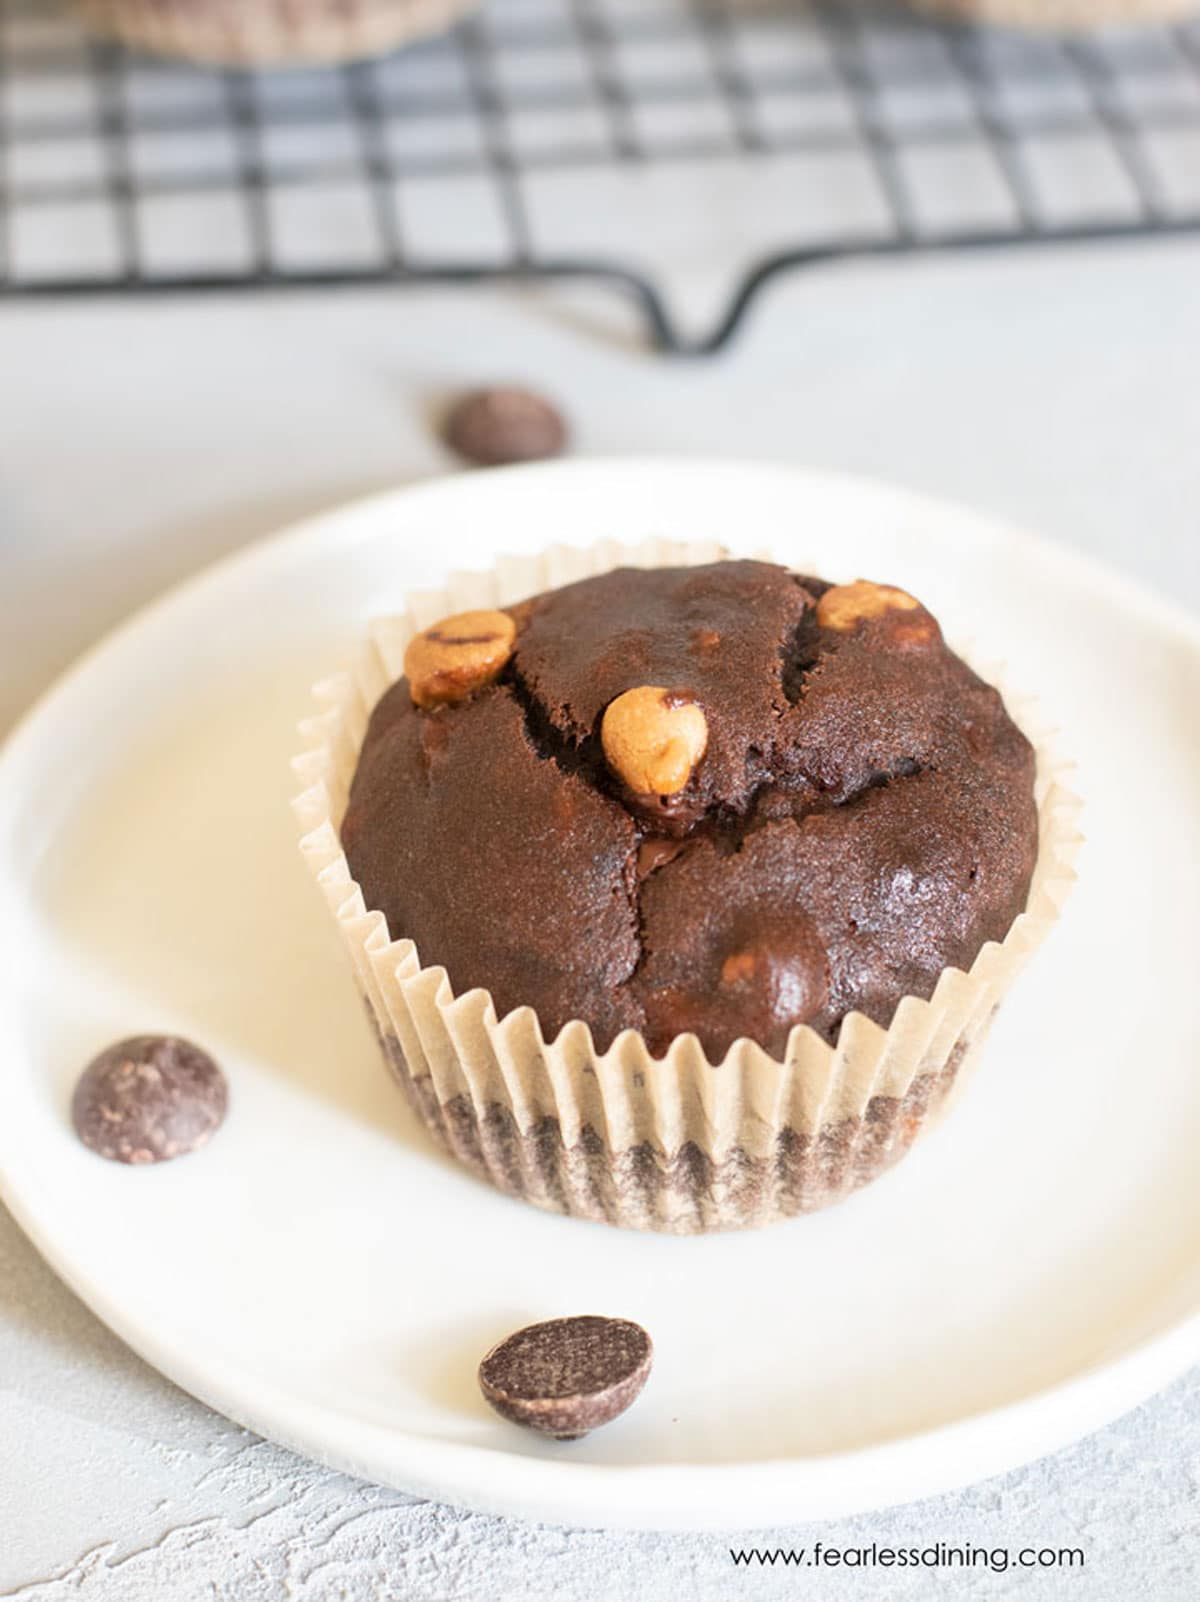 A chocolate muffin with chips on a plate